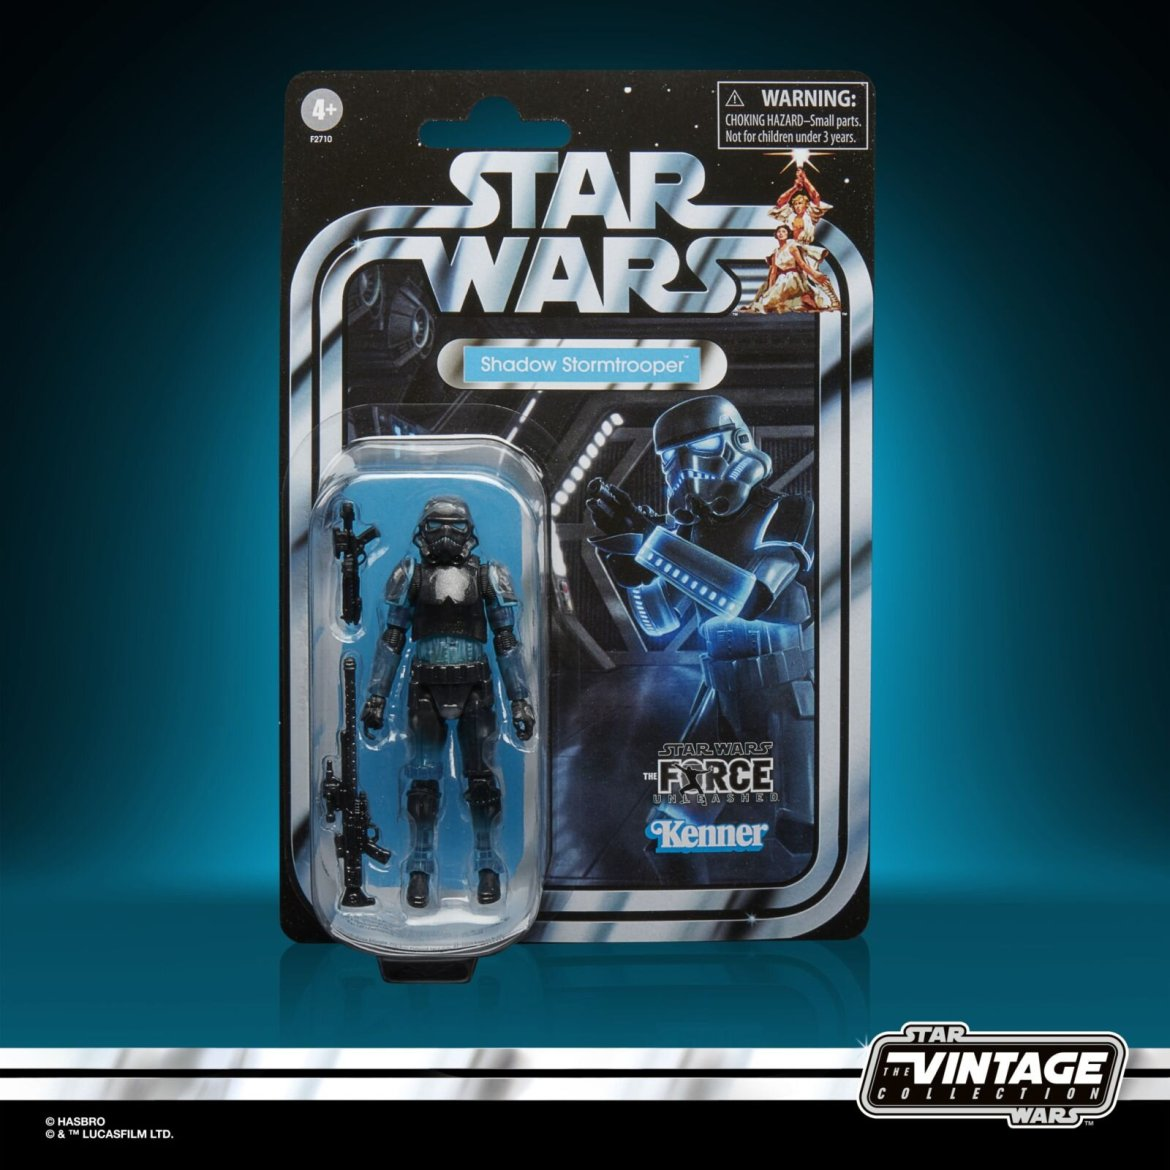 STAR WARS THE VINTAGE COLLECTION GAMING GREATS 3.75-INCH SHADOW STORMTROOPER Figure (1).jpg